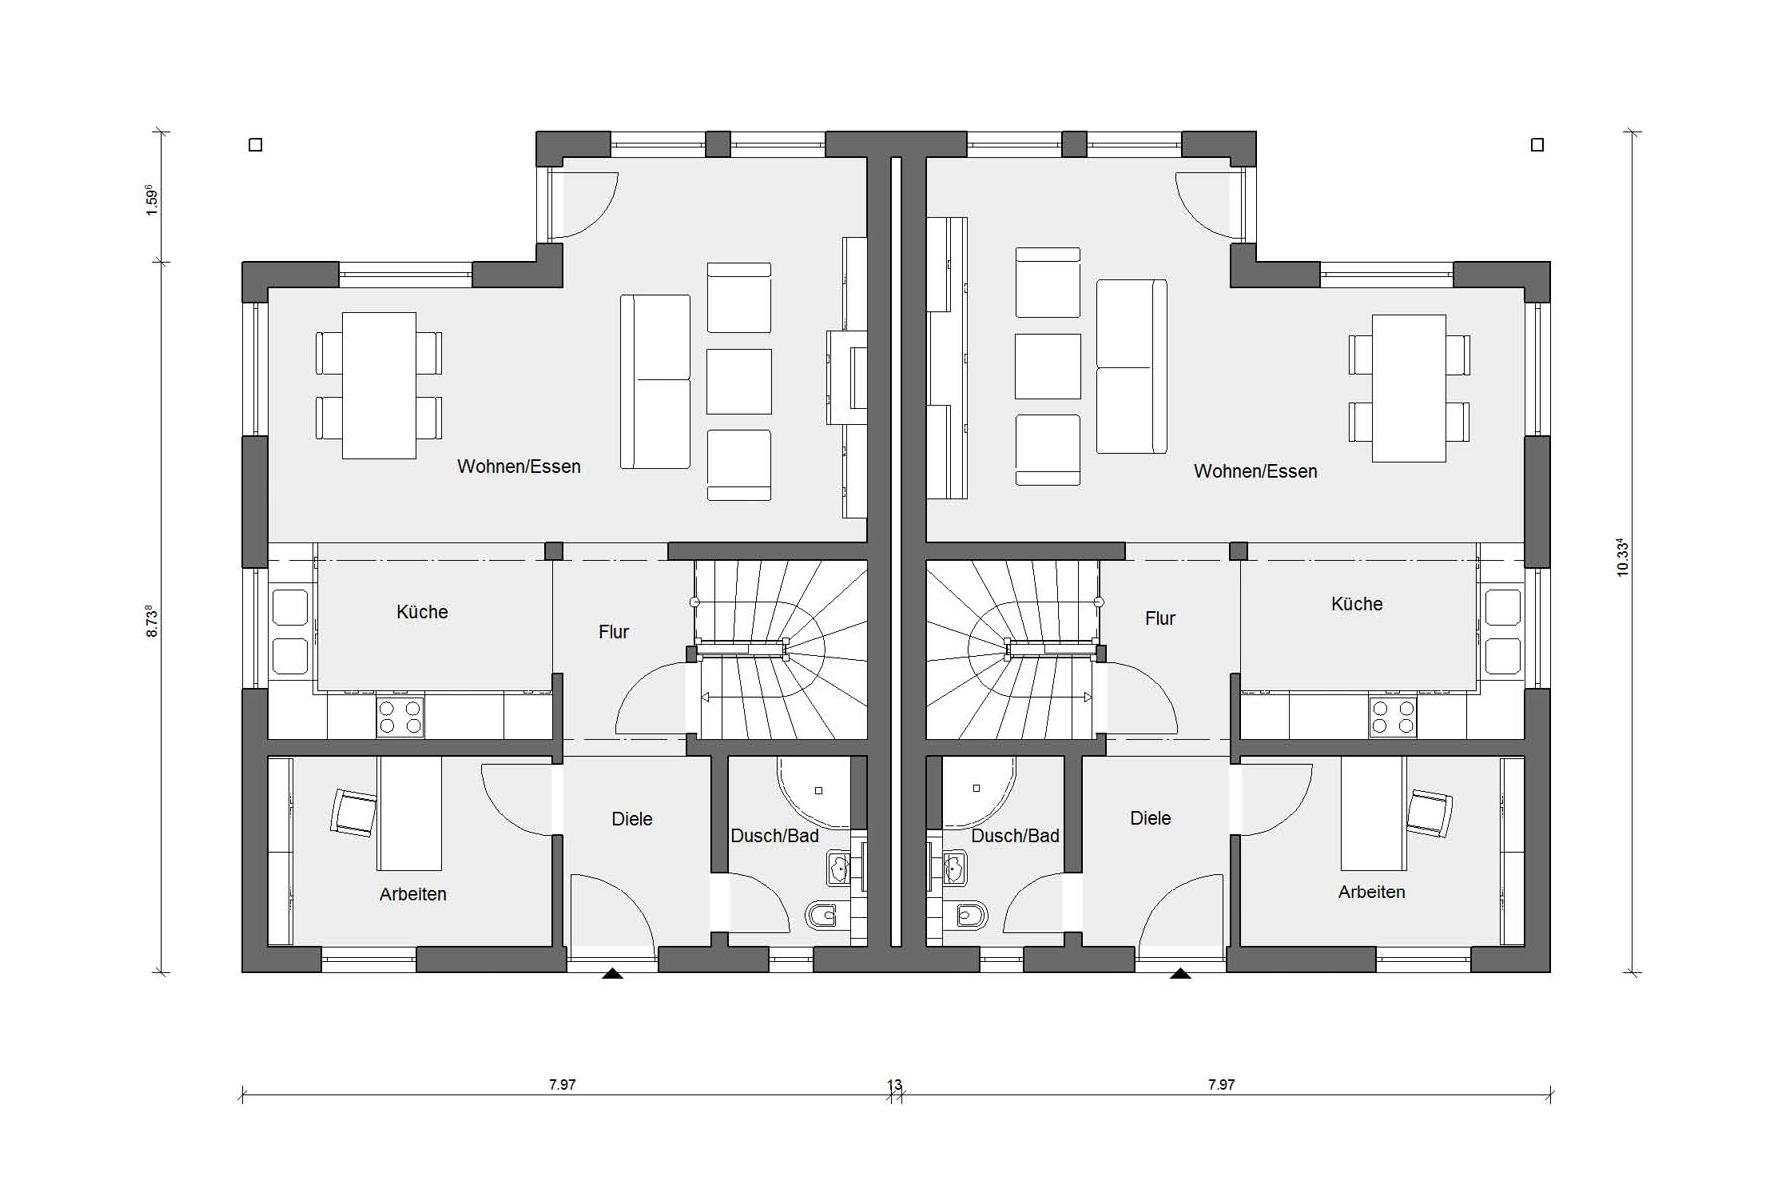 Ground floor floor plan semi-detached house with covered patio